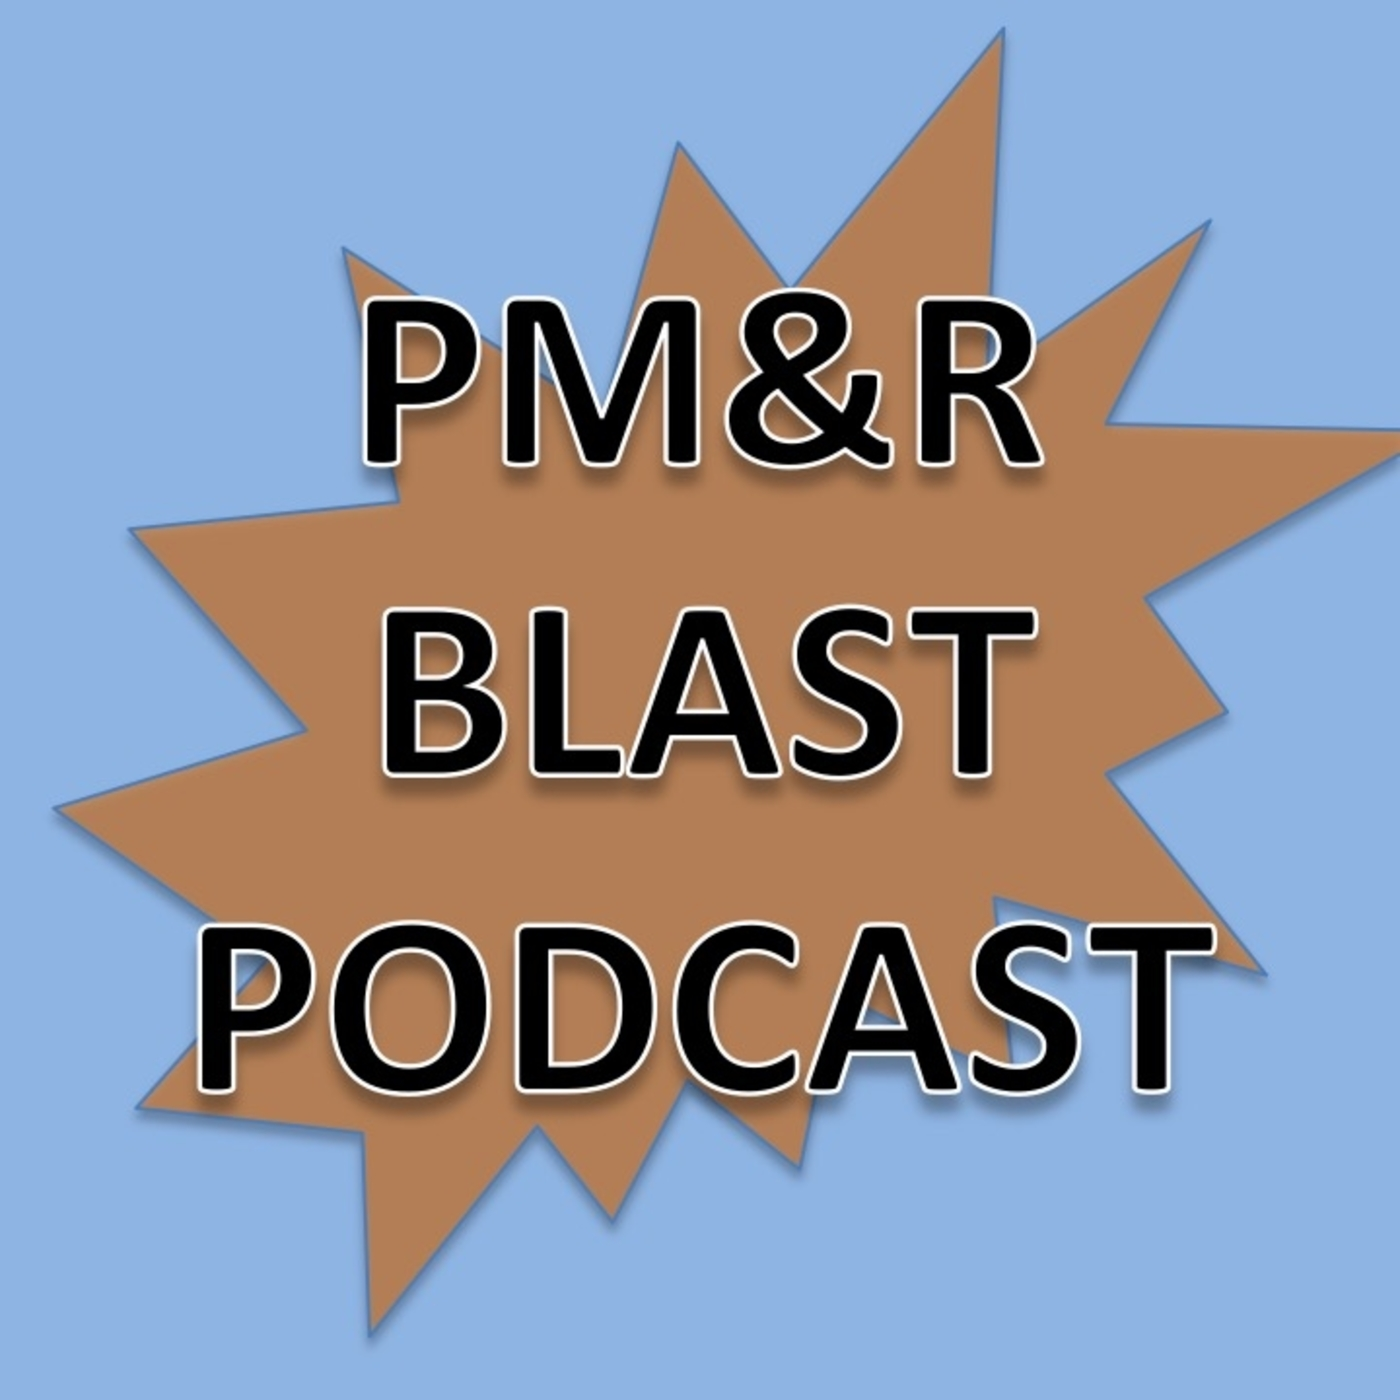 PM&R Blast Podcast